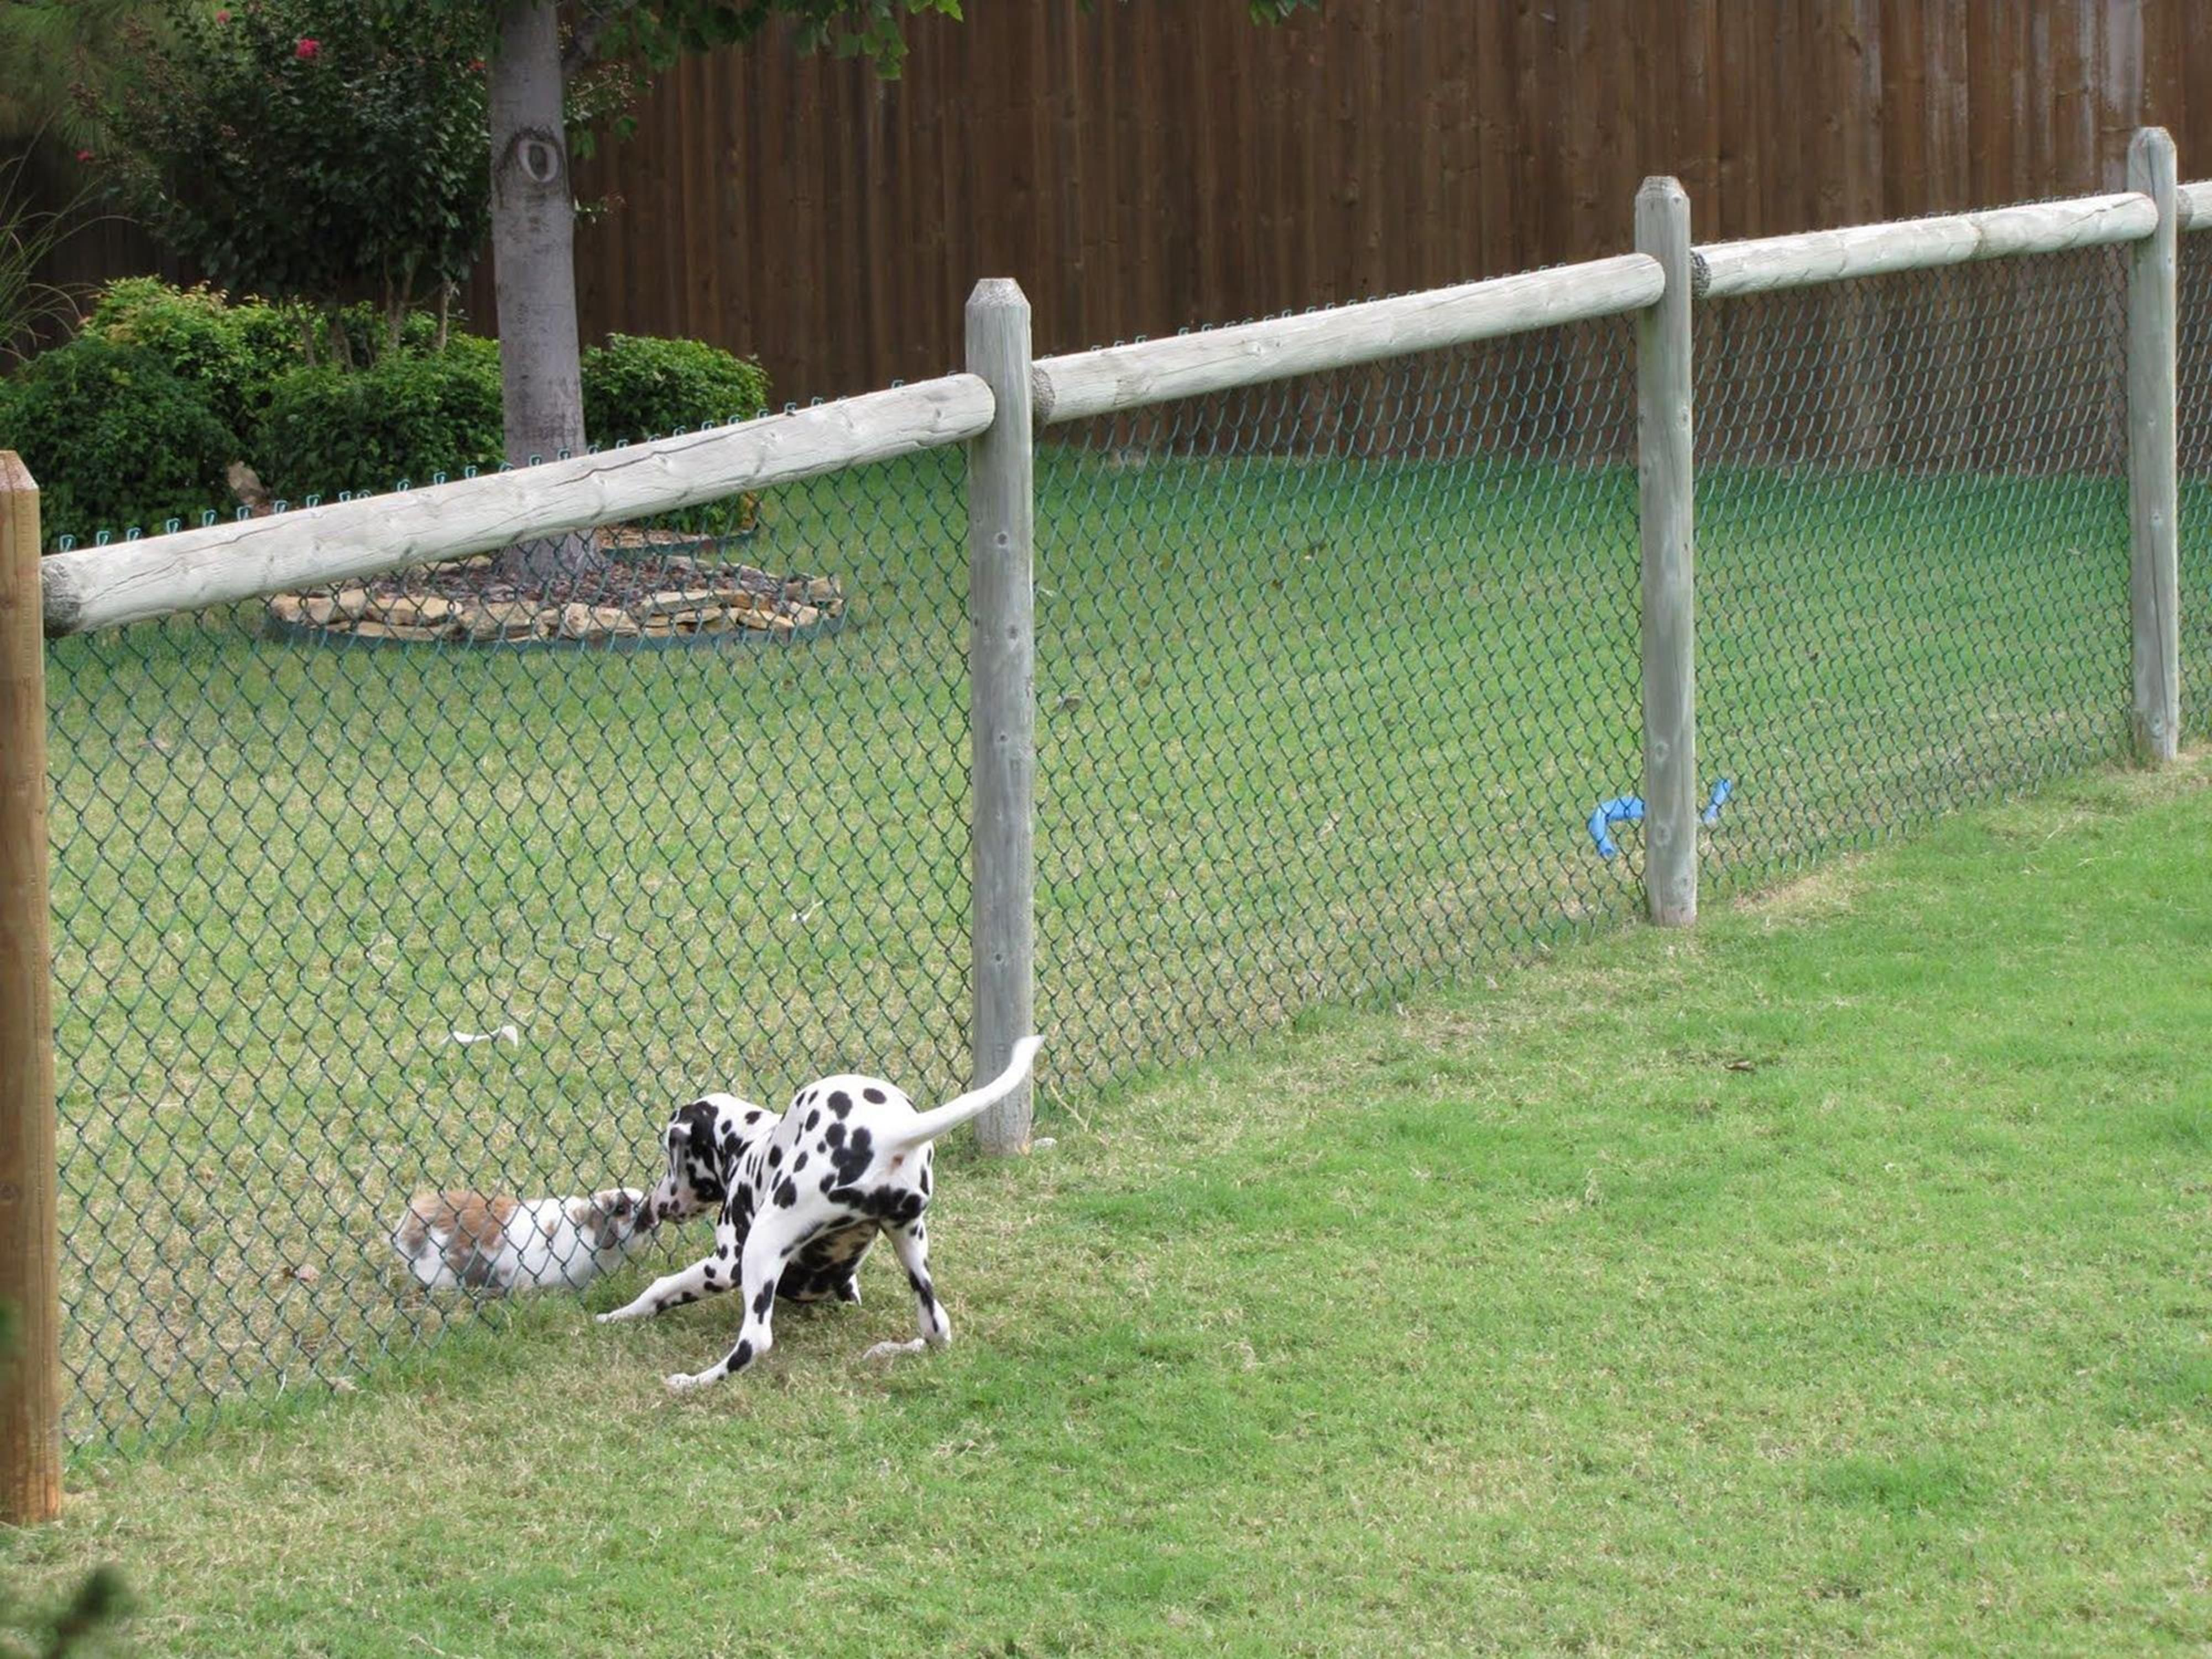 20 Inexpensive Temporary Fencing Ideas For Your Home 9 Dog Yard